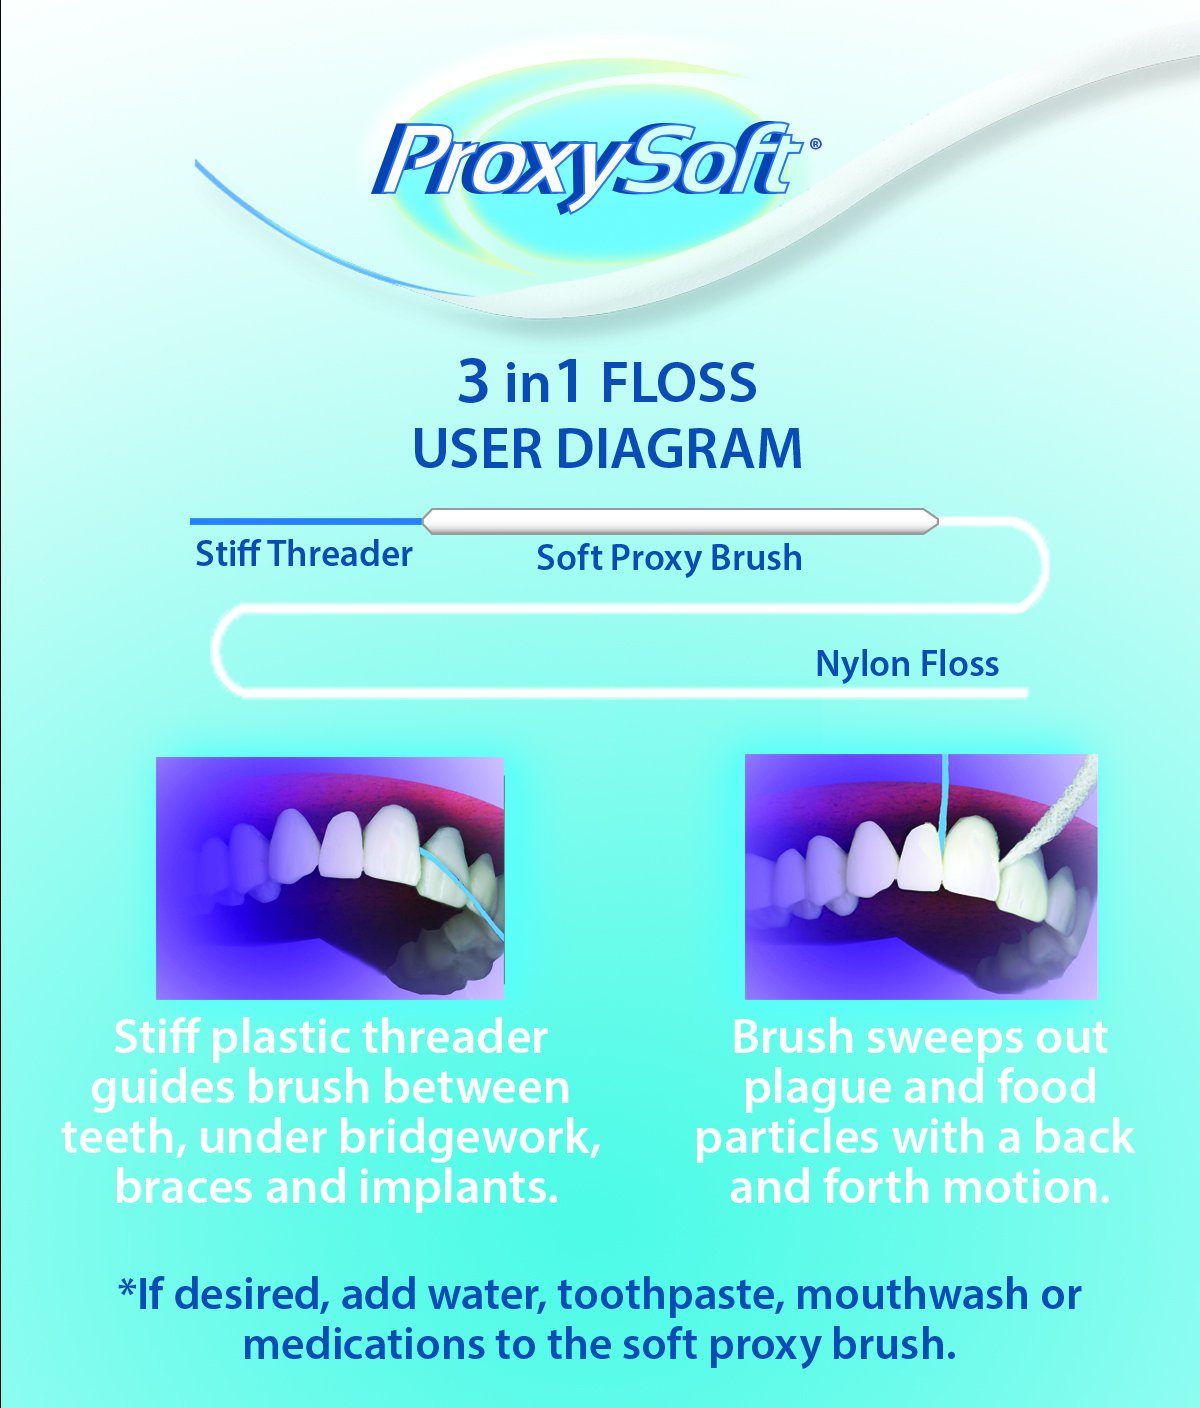 Dental Floss for Optimal Teeth Flossing vs Traditional Flossing, Pre-Cut Floss Threaders for Flossing with Built-in Soft Proxy Brush and Stiff Yarn Threader, 3-in-1 Dental Floss by ProxySoft (6 Packs)